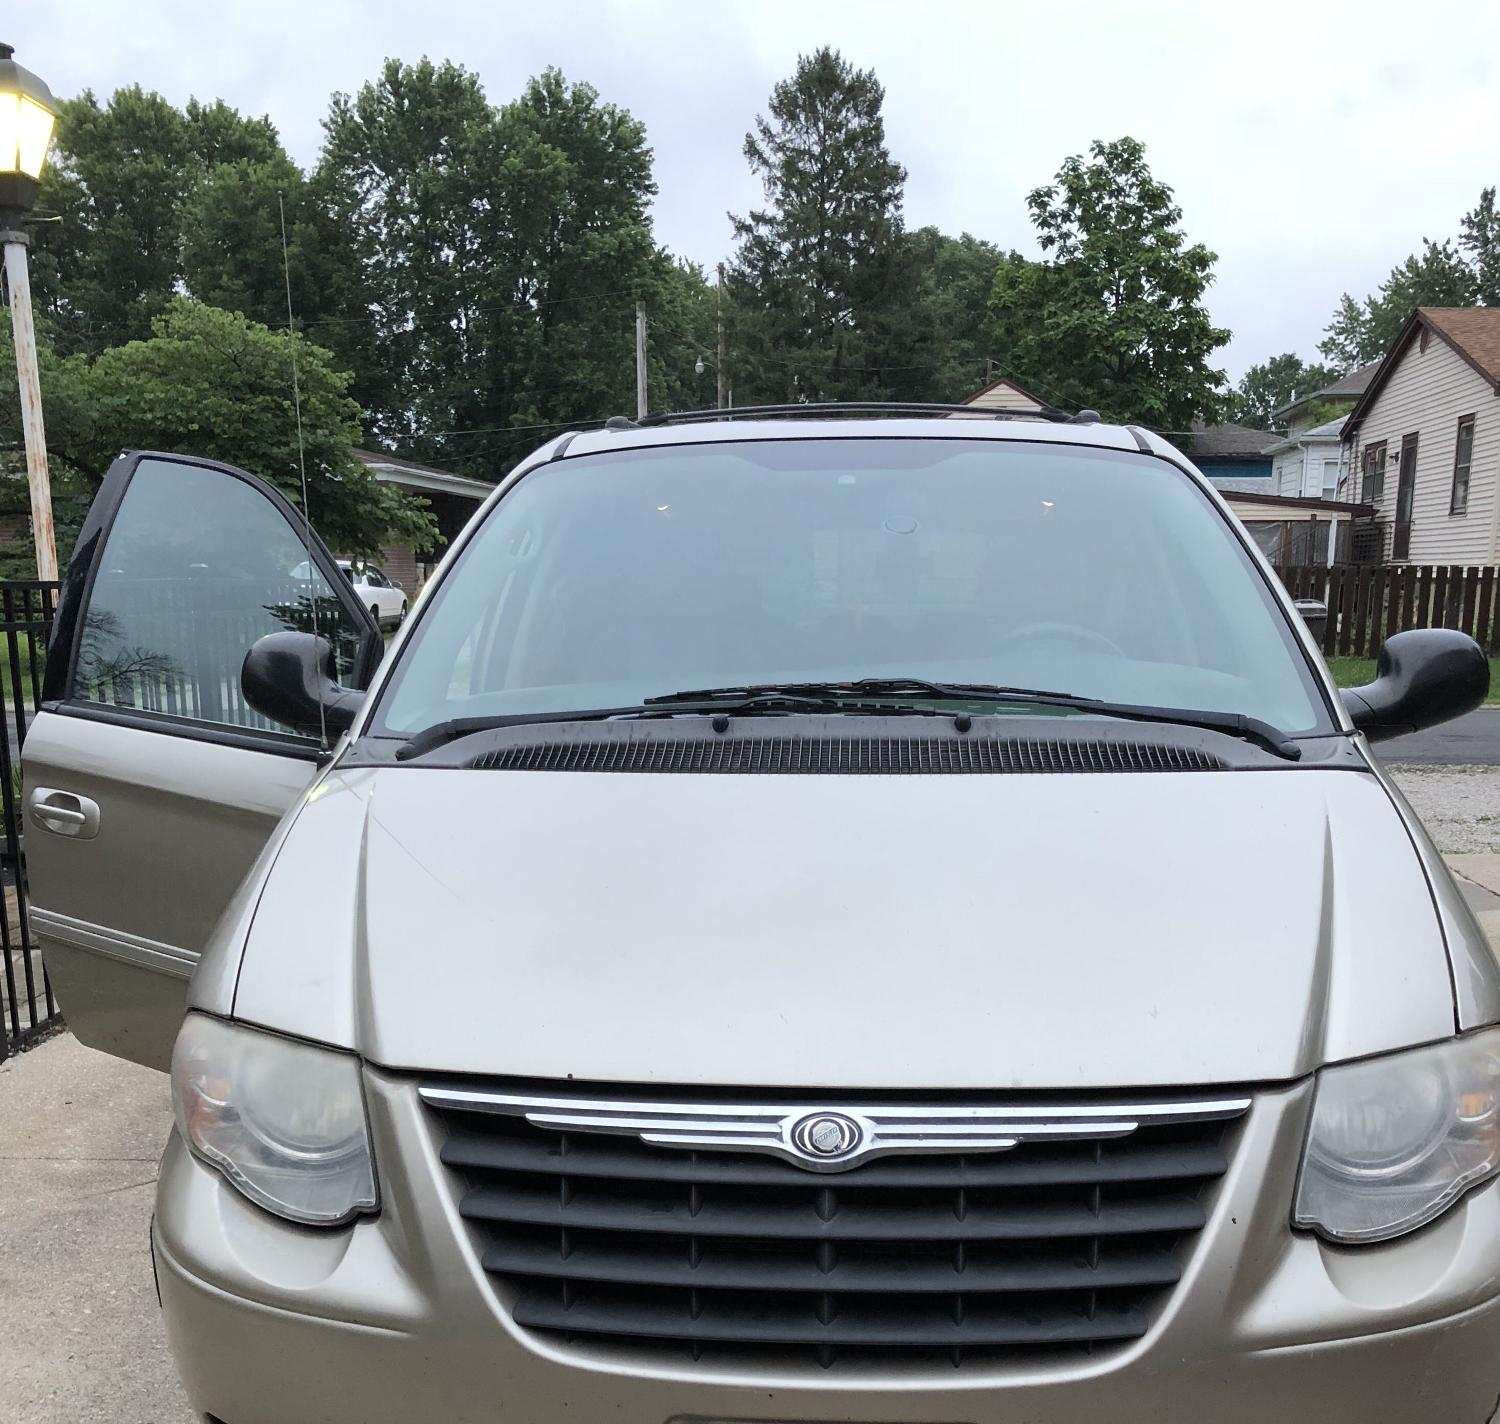 Find More 2005 Town & Country Chrysler Mini Van For Sale